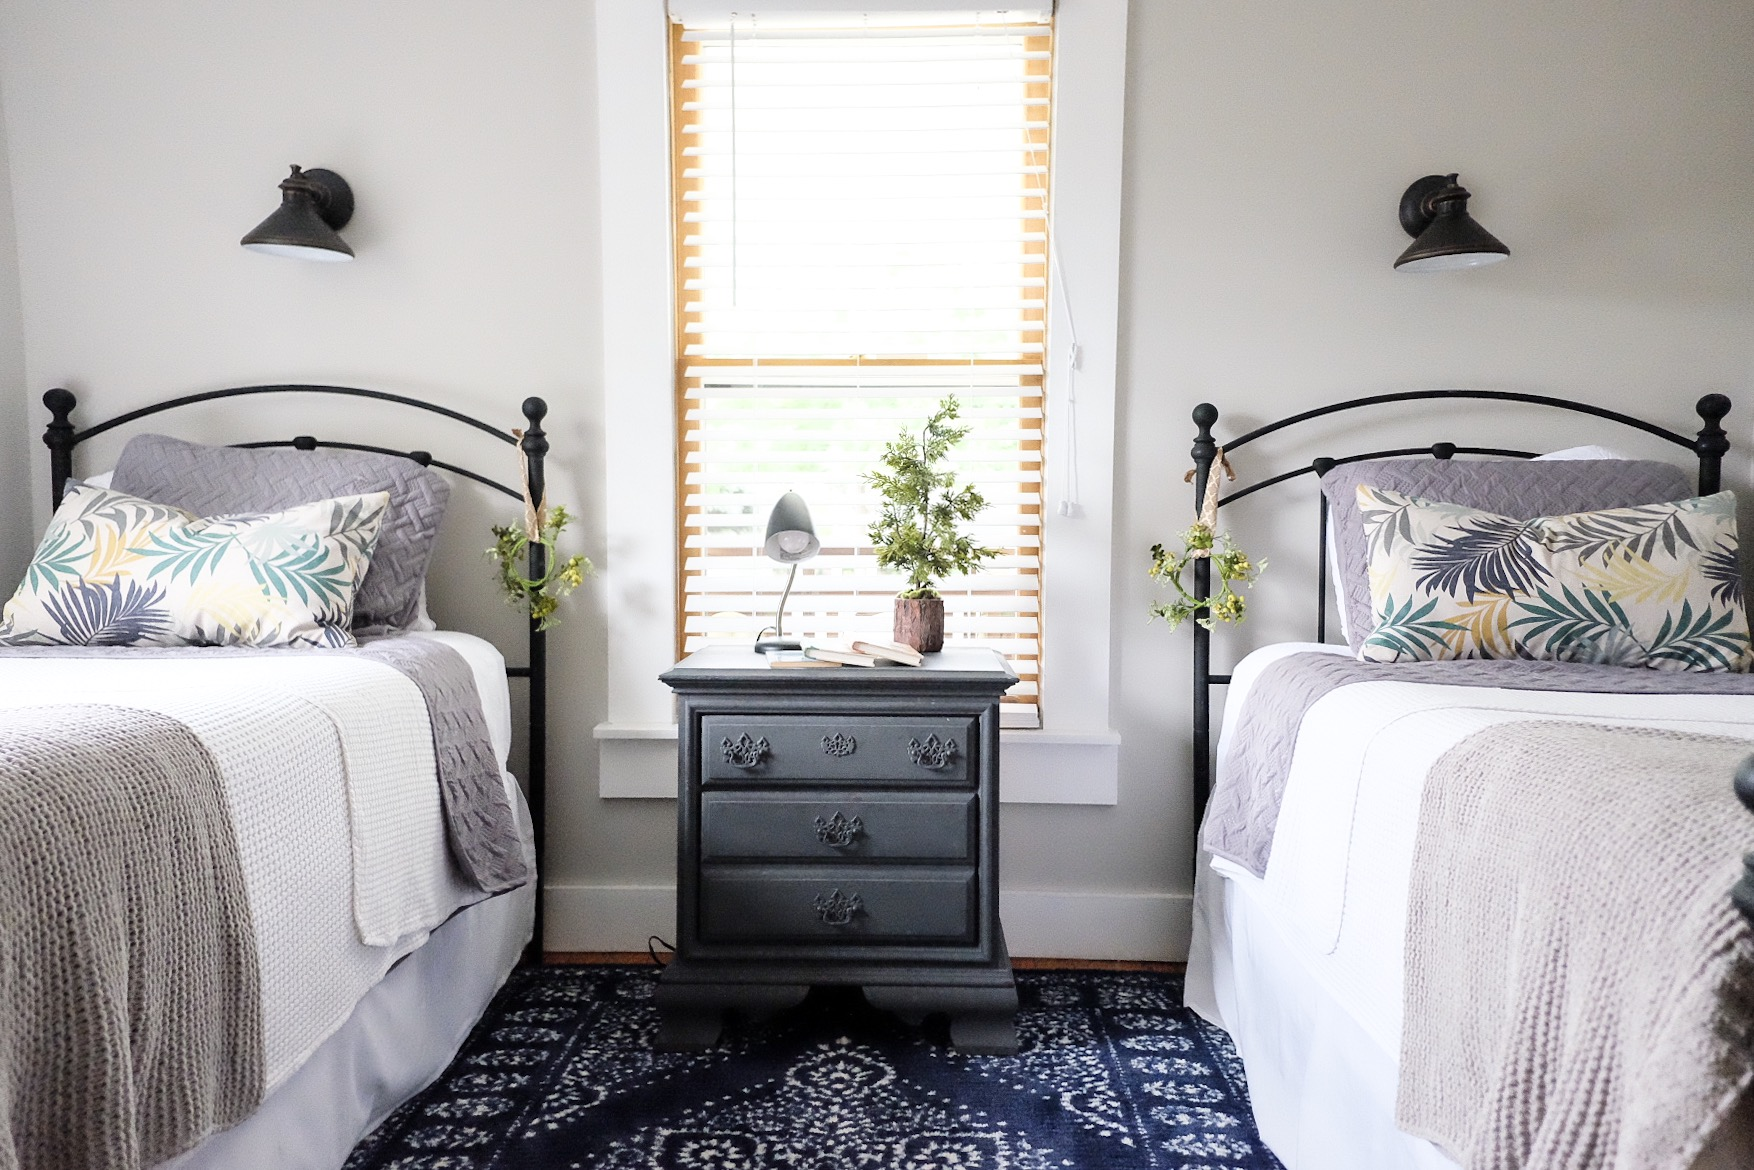 Our Midtown Bungalow Airbnb twin bedroom -     Cottagestyleblog.com